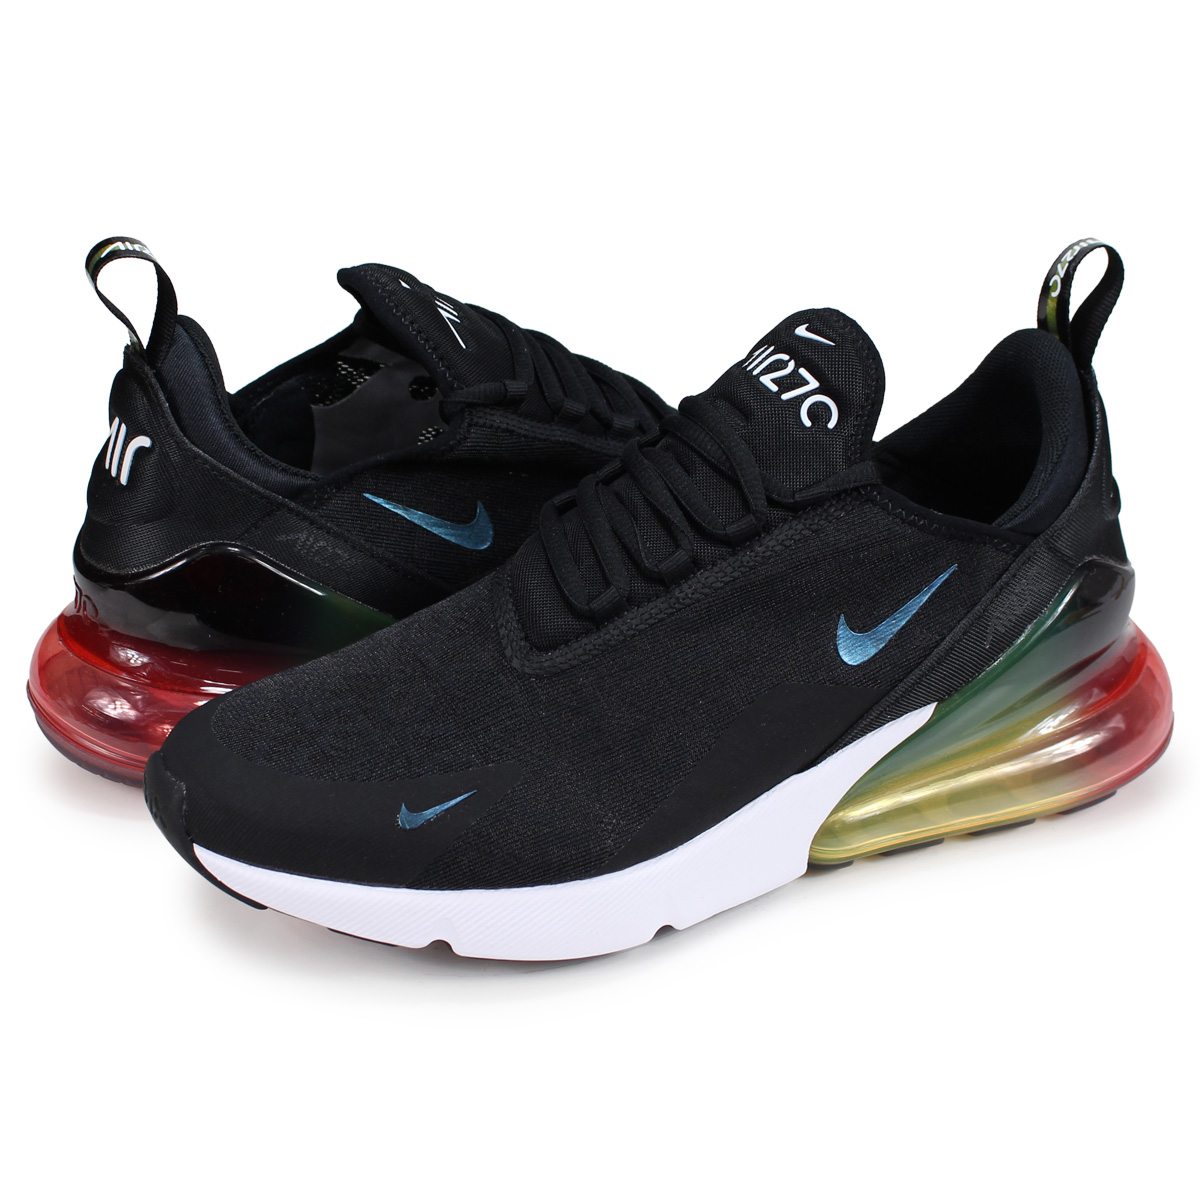 hot sale online c83ab c4926 Nike NIKE Air Max 270 sneakers men AIR MAX 270 SE black AQ9164-003 [193]